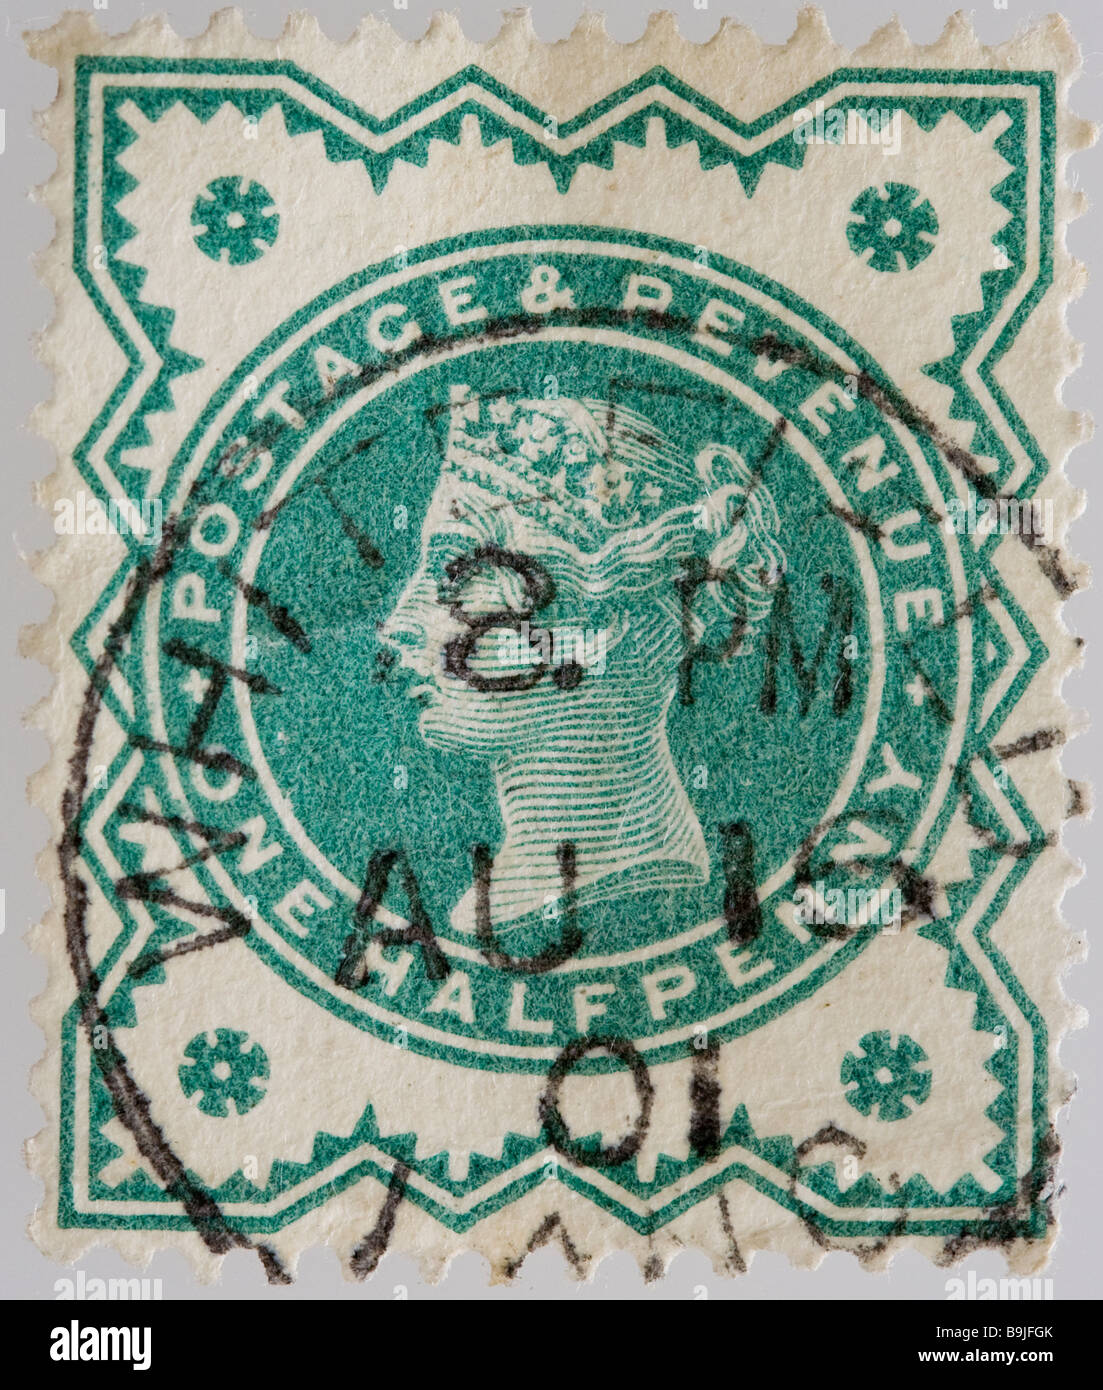 English Victorian postage half penny Jubilee stamp 1887-1900 SG 213 used - Stock Image